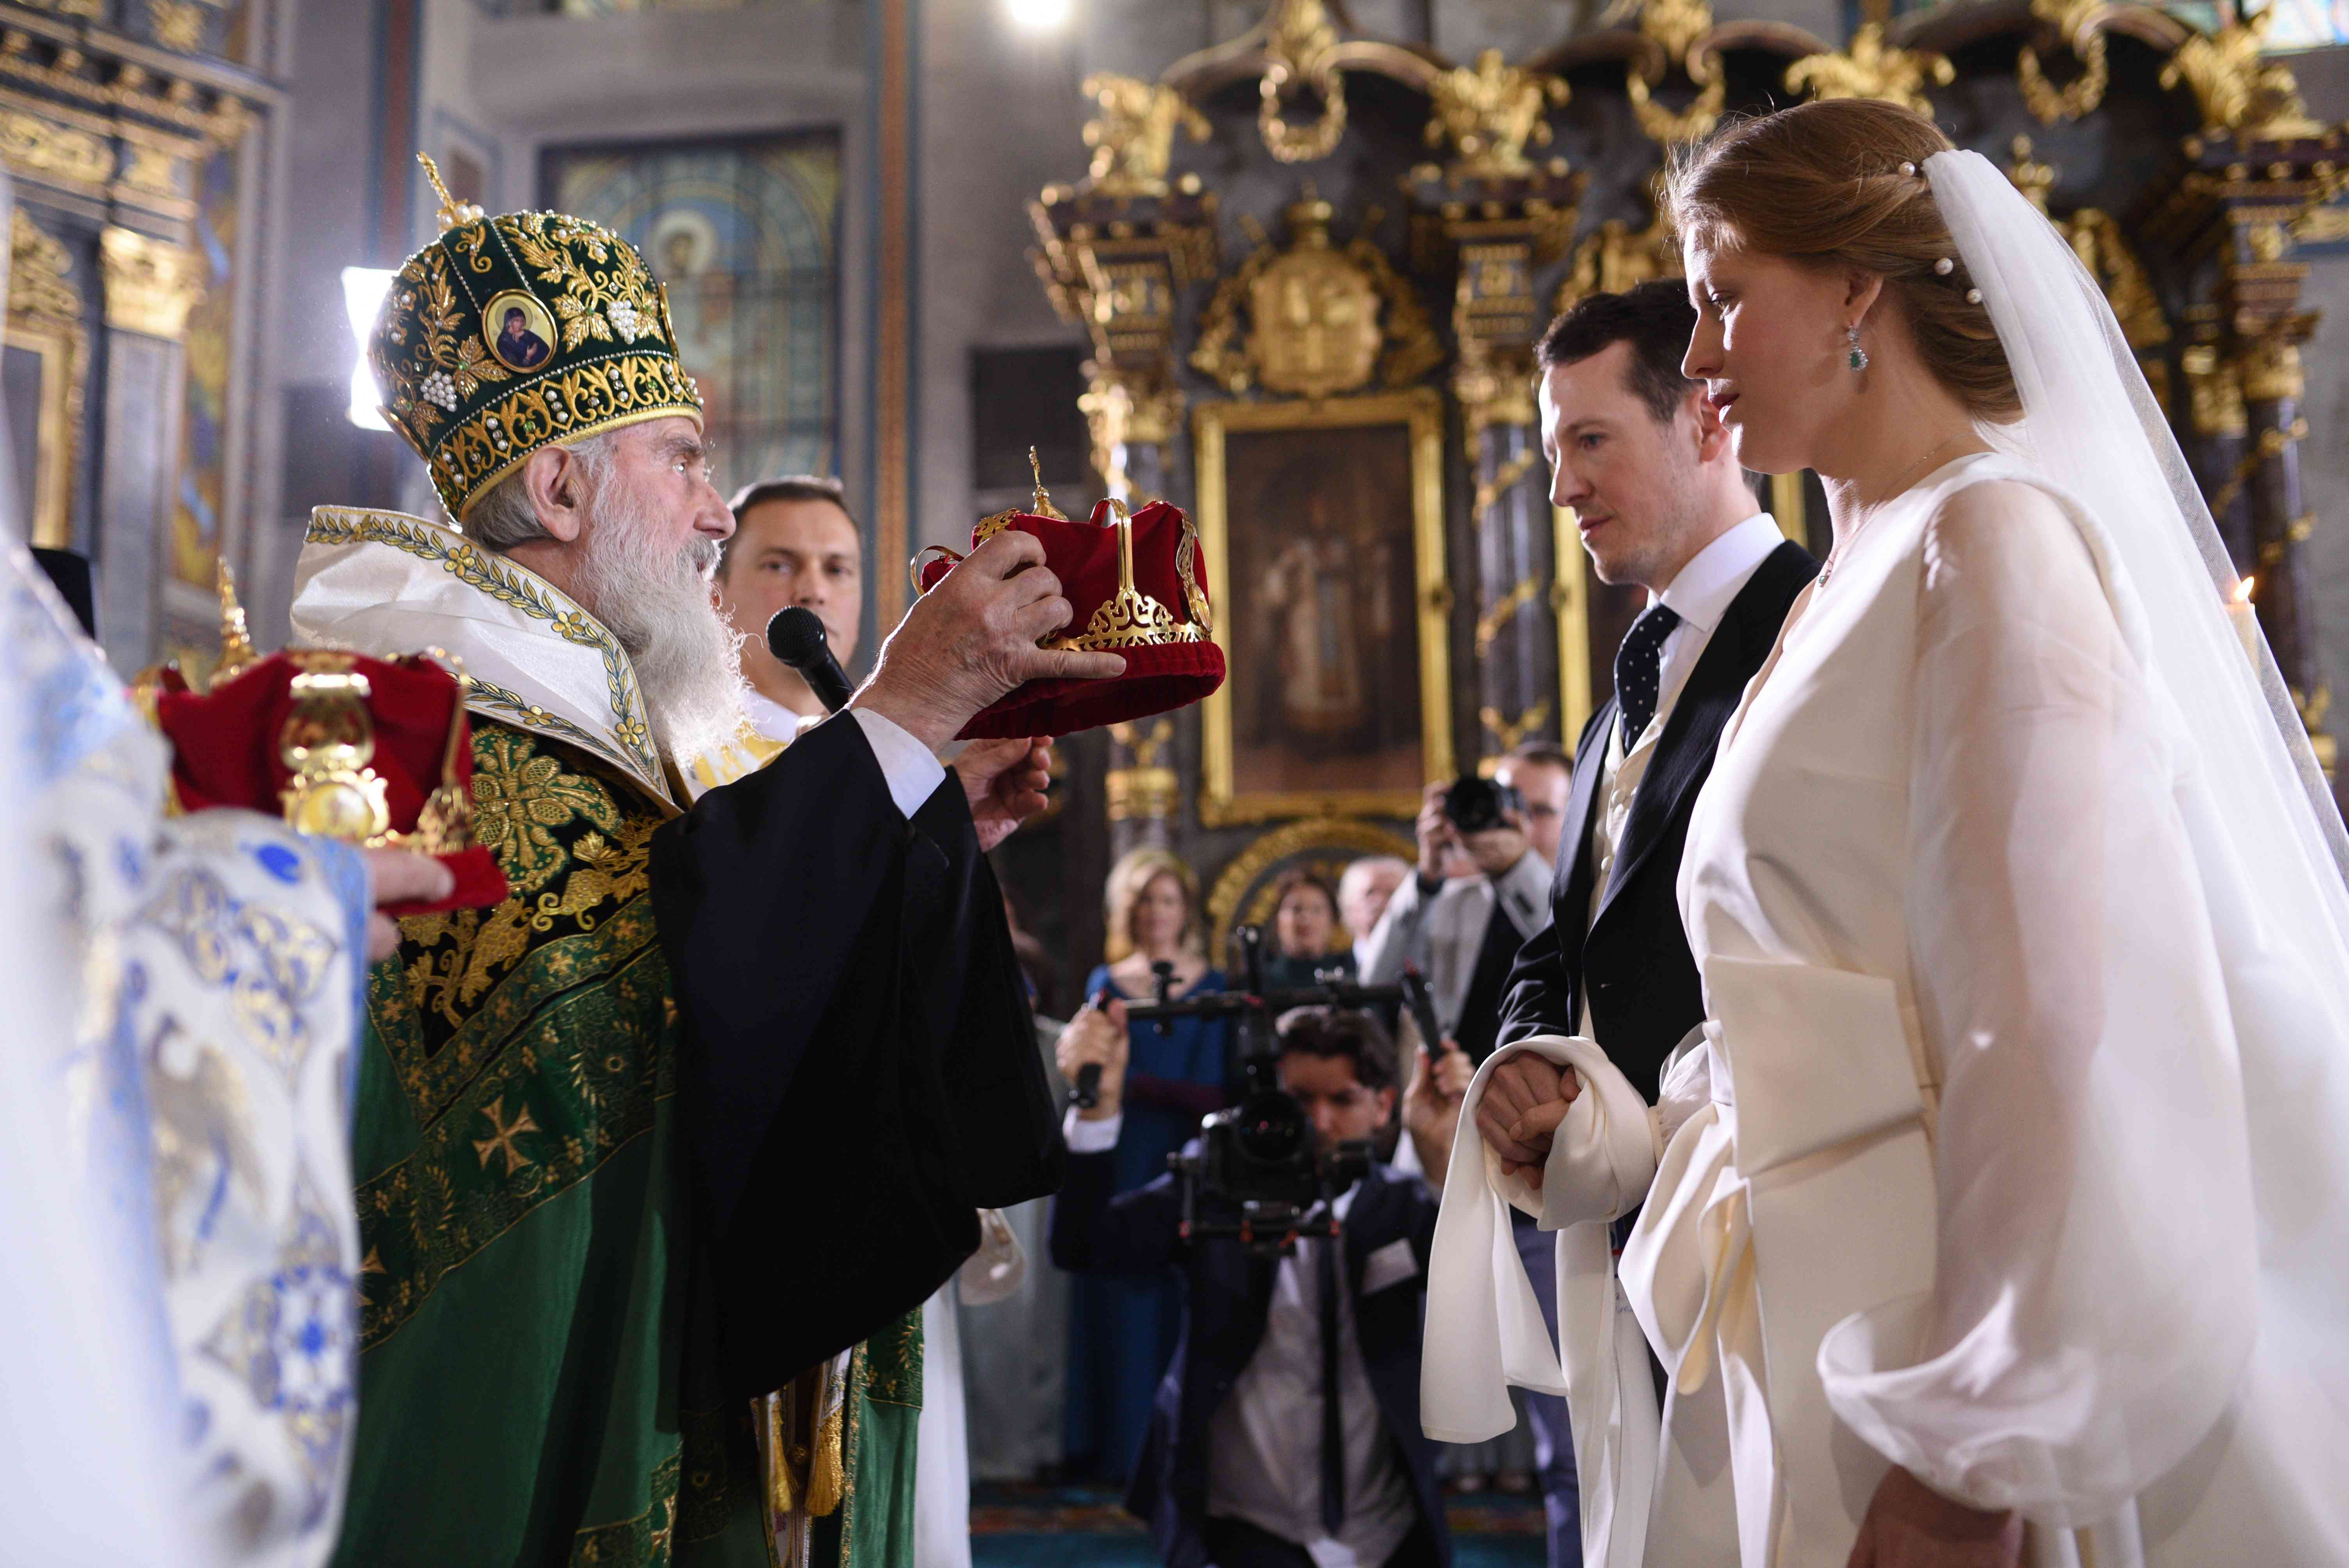 Bride and Groom with Crowns